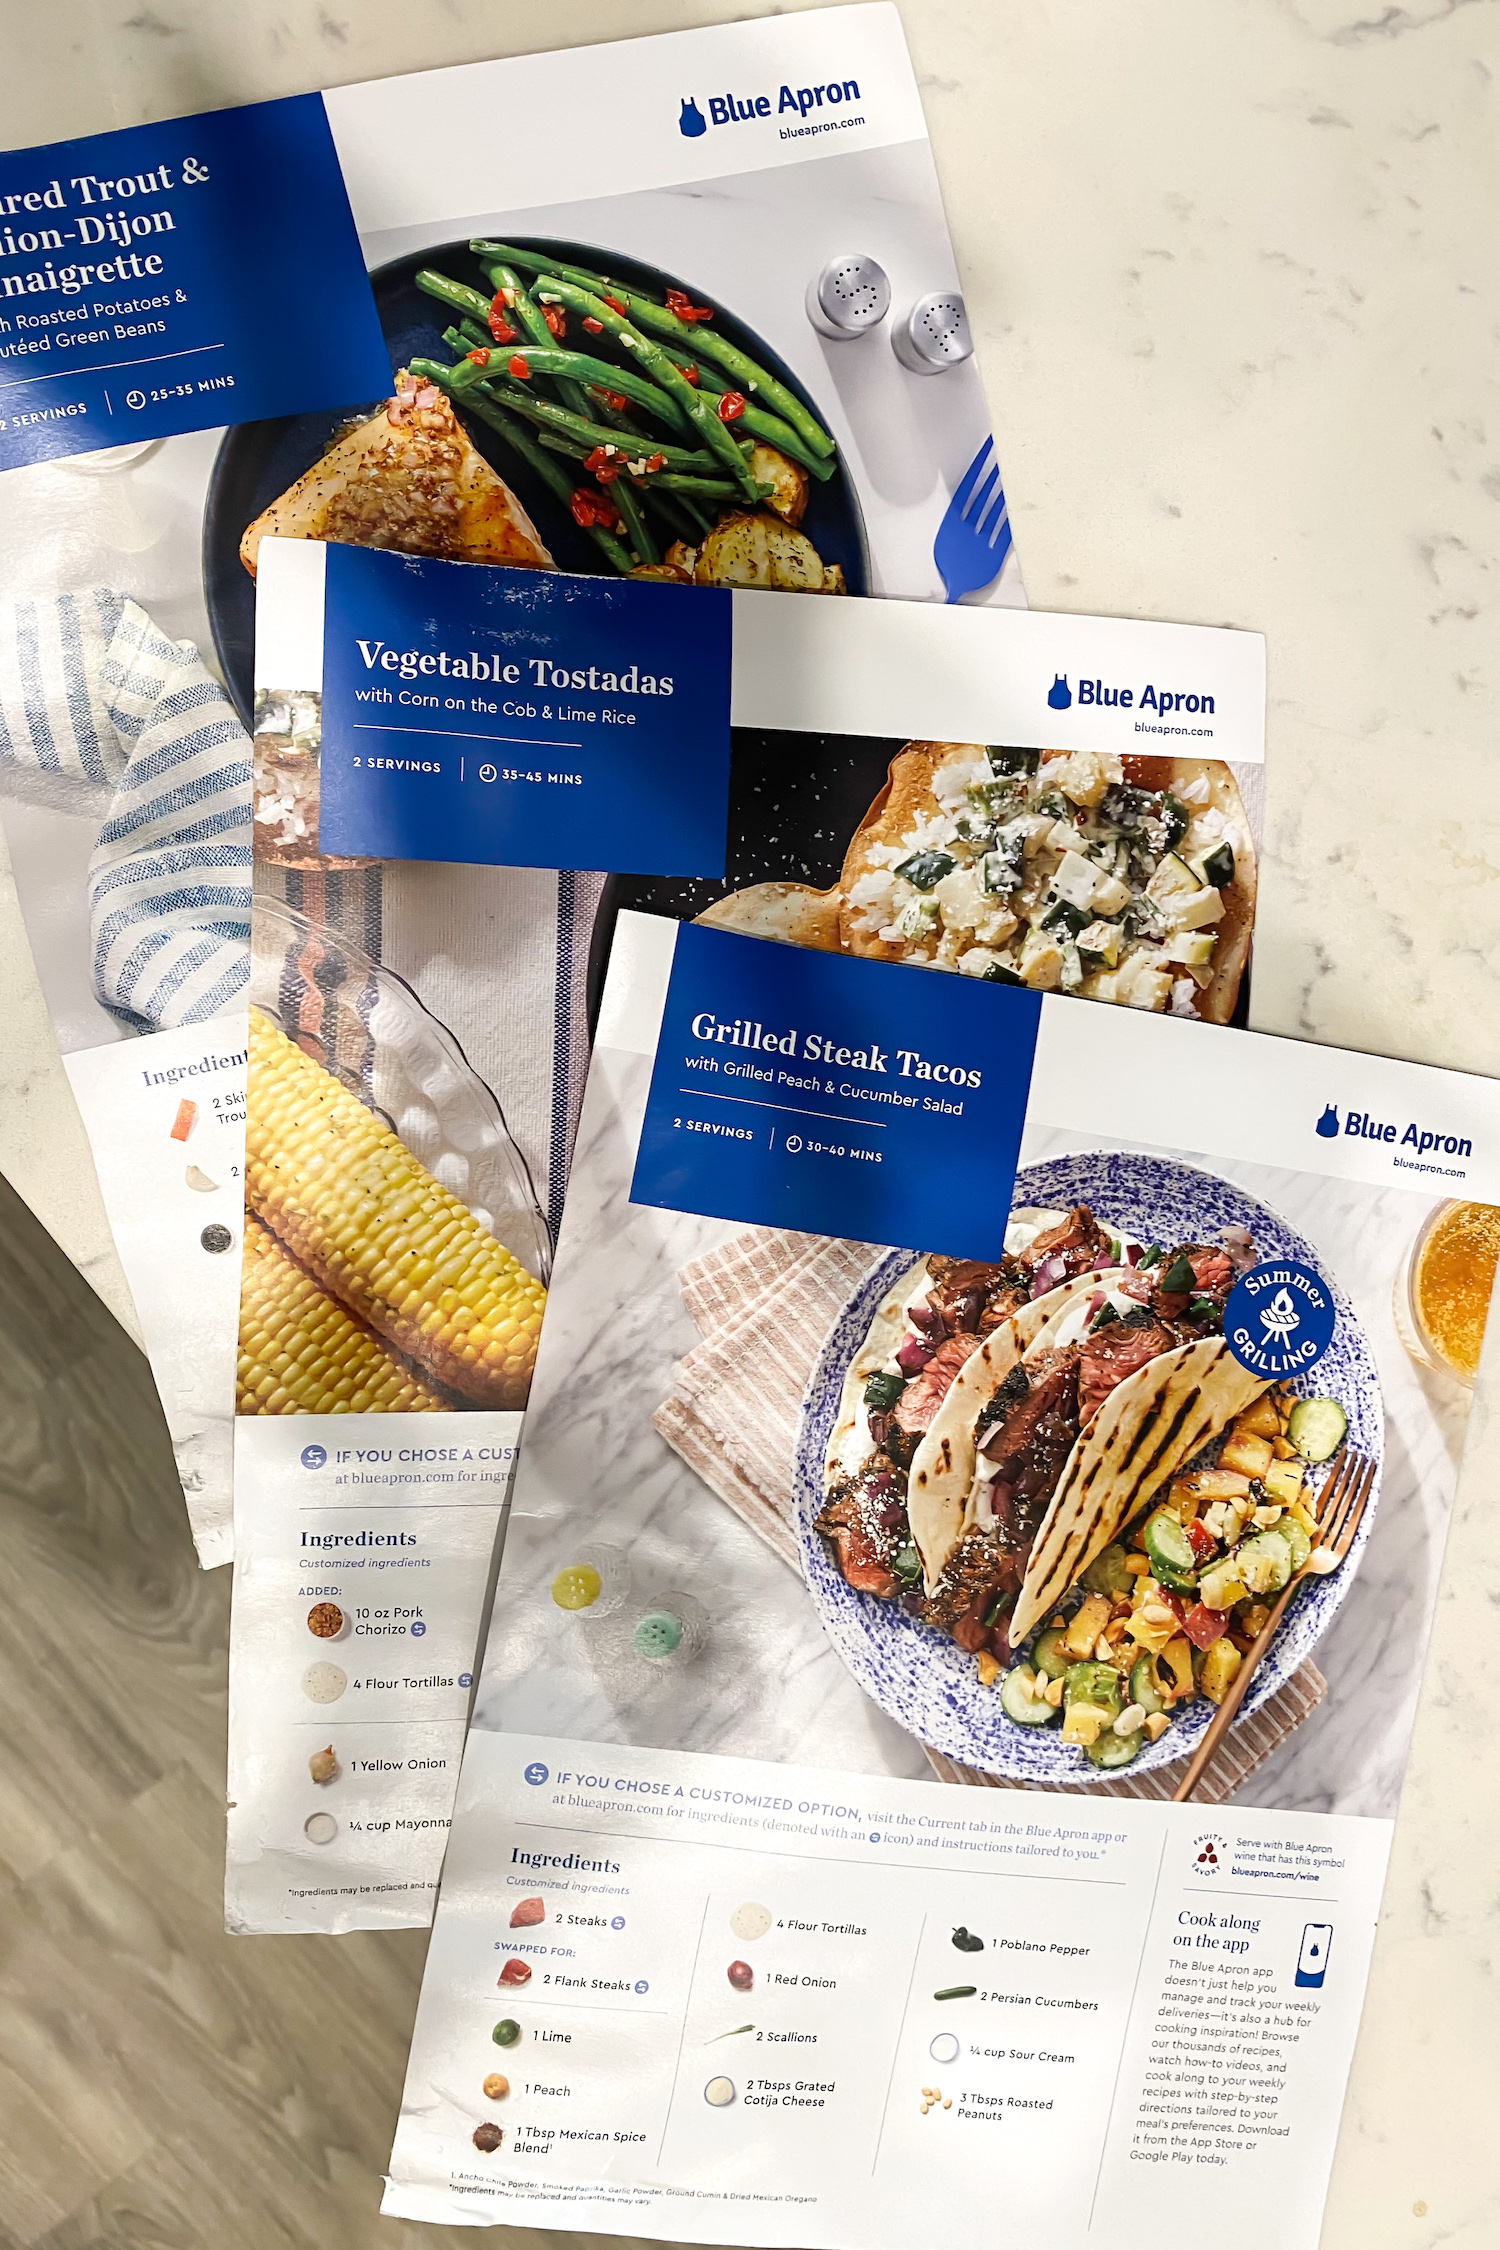 Getting Back into a Routine with Blue Apron